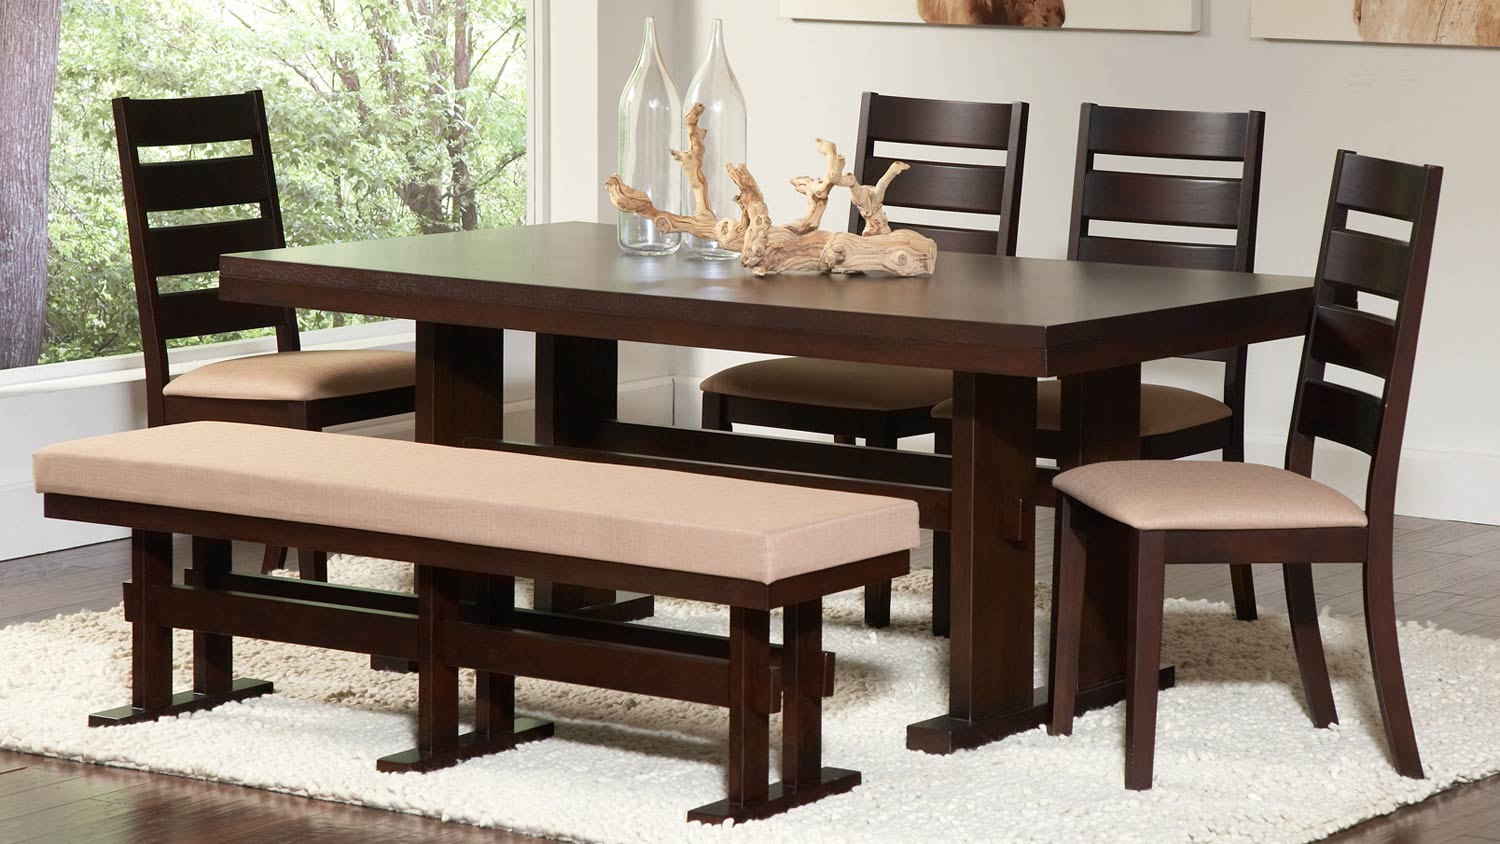 Coaster Travis Dining Set - Cappuccino